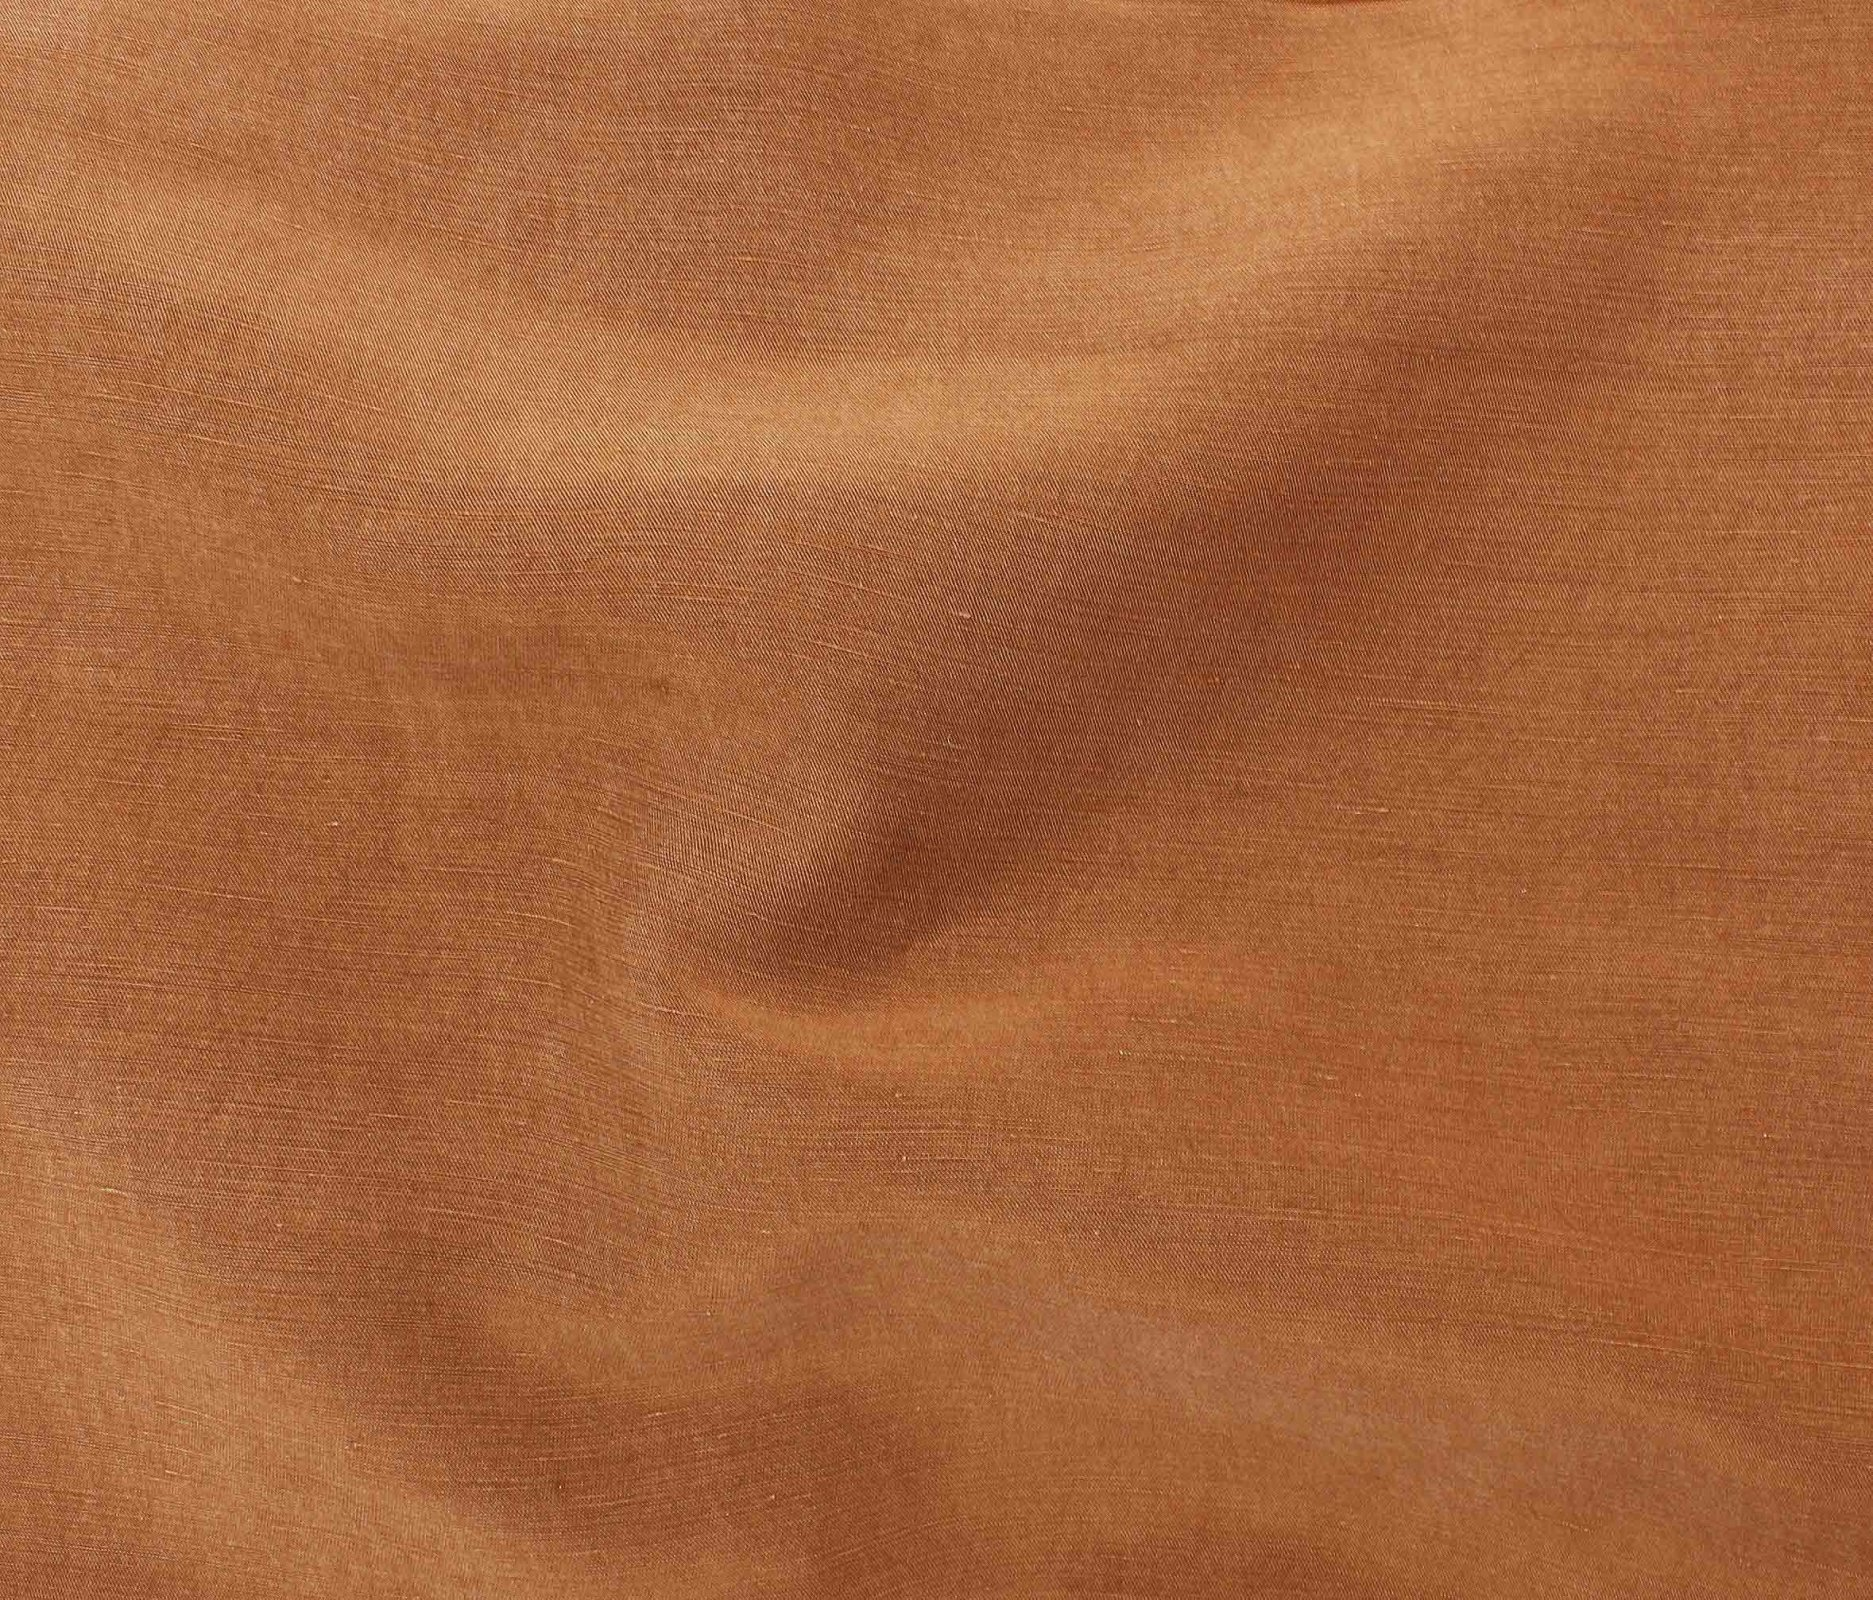 Cupro/Tencel/Linen - Whiskey